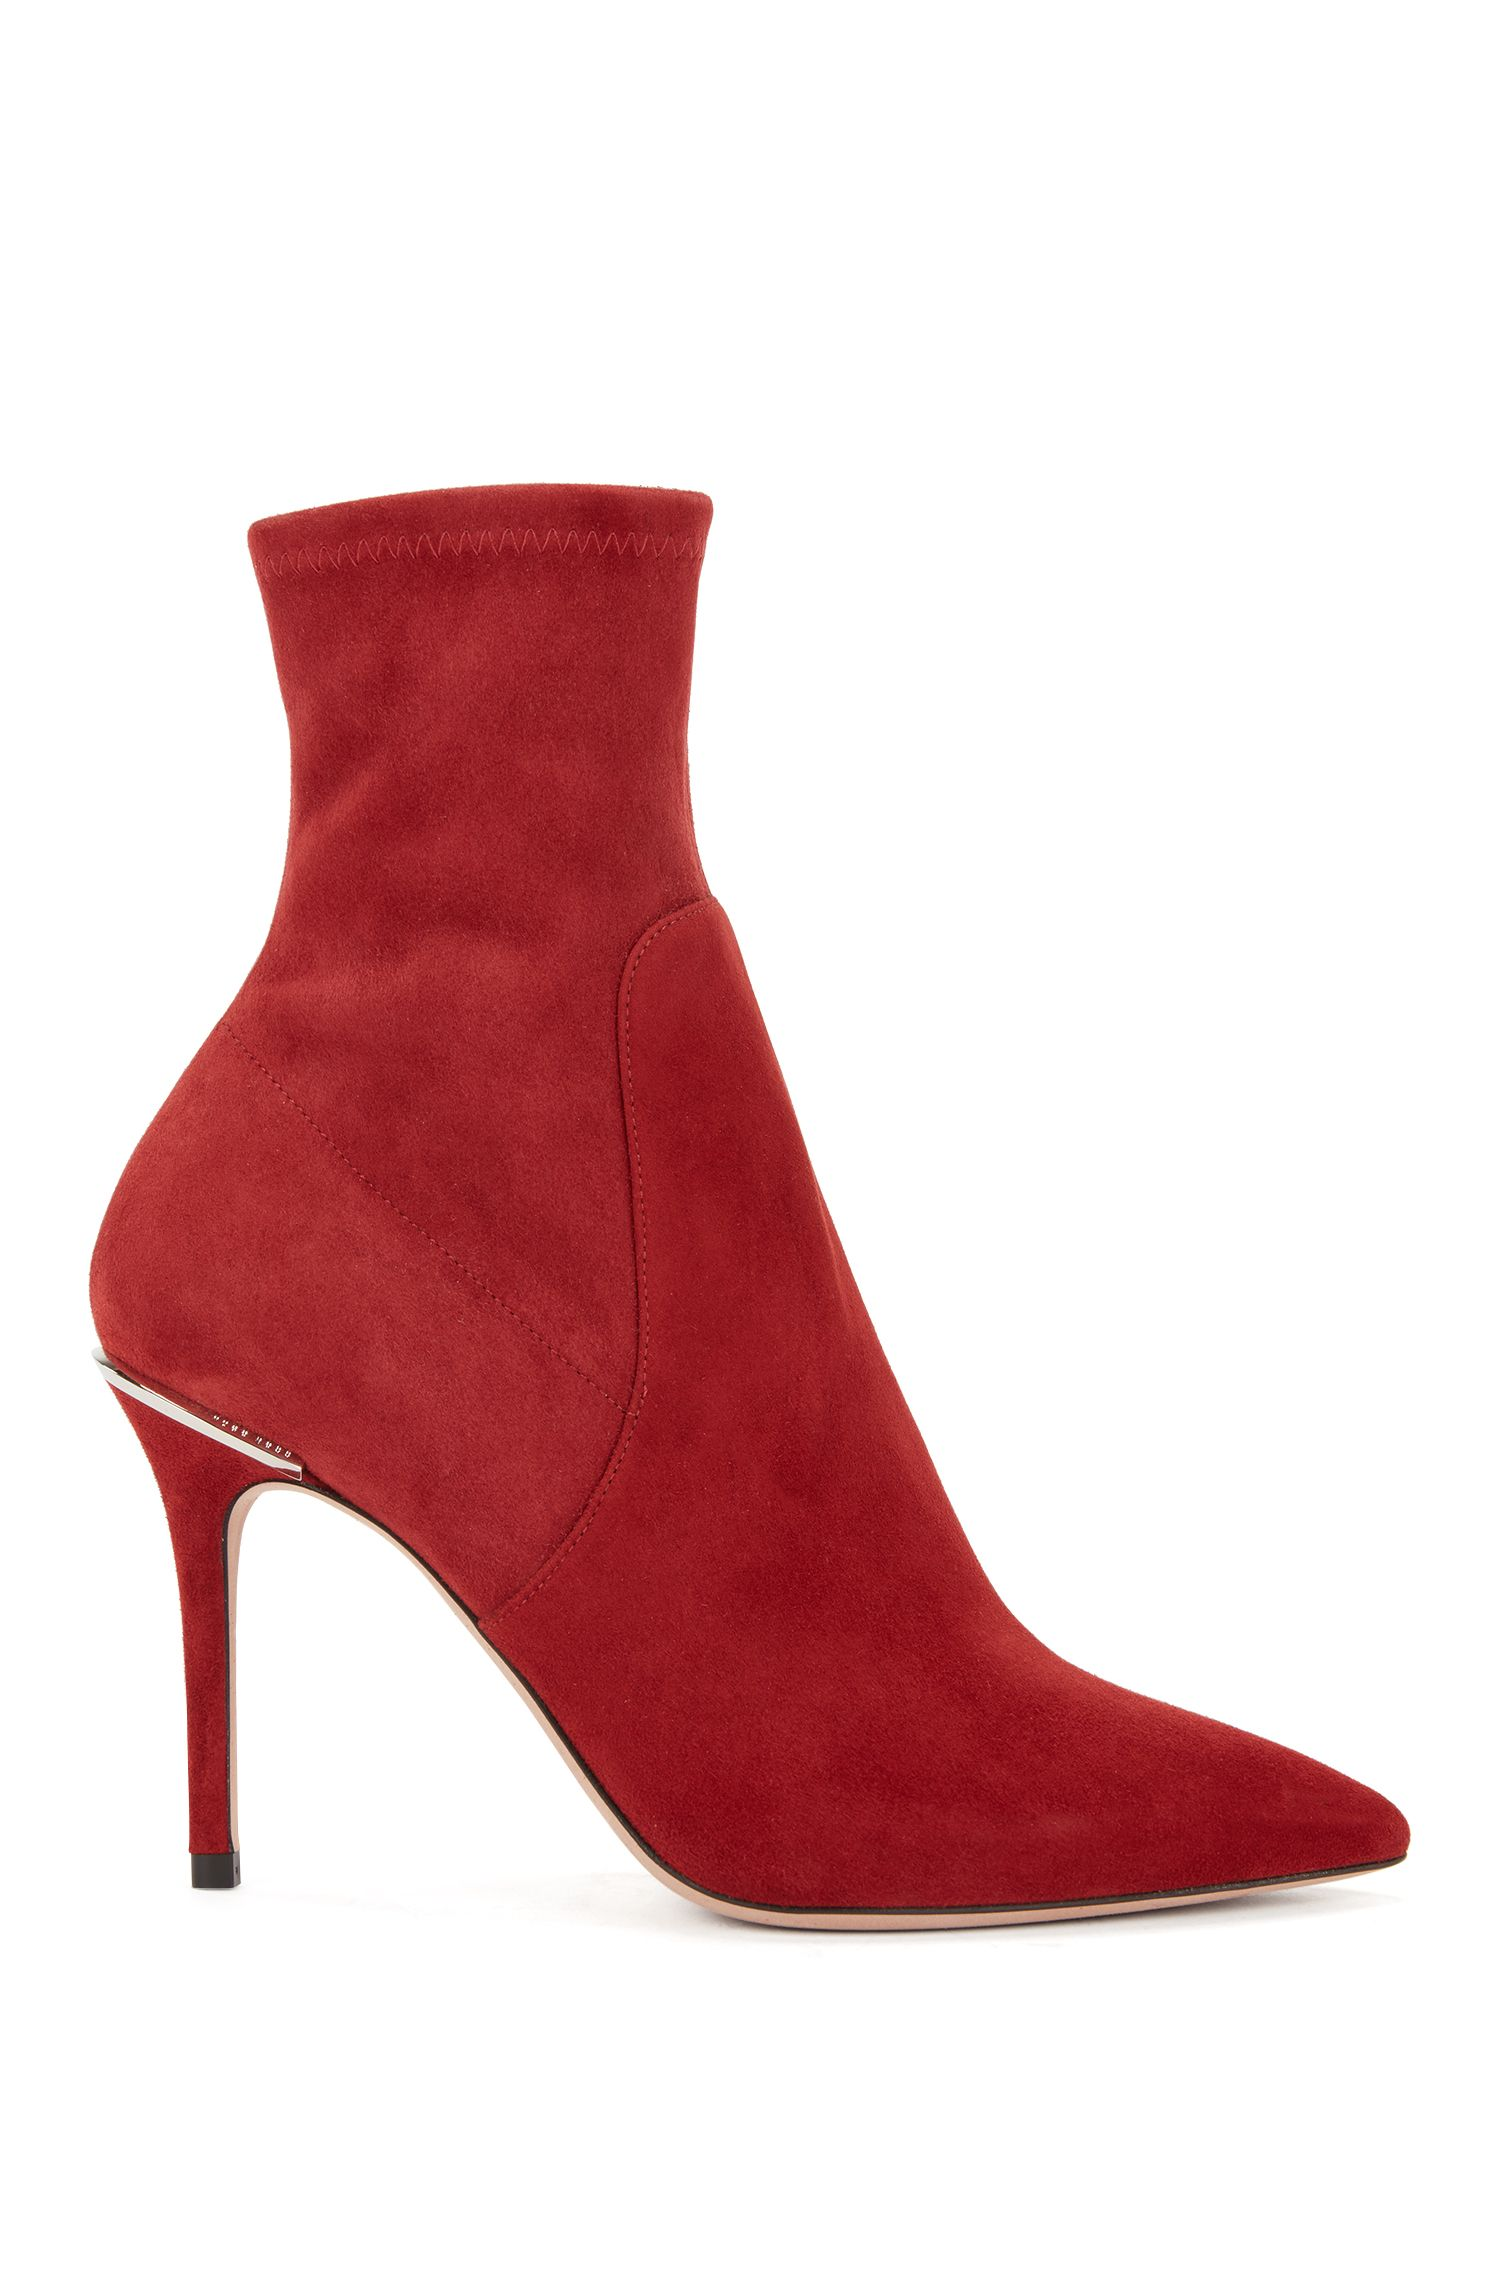 Bottines-chaussettes en daim italien stretch, Rouge sombre